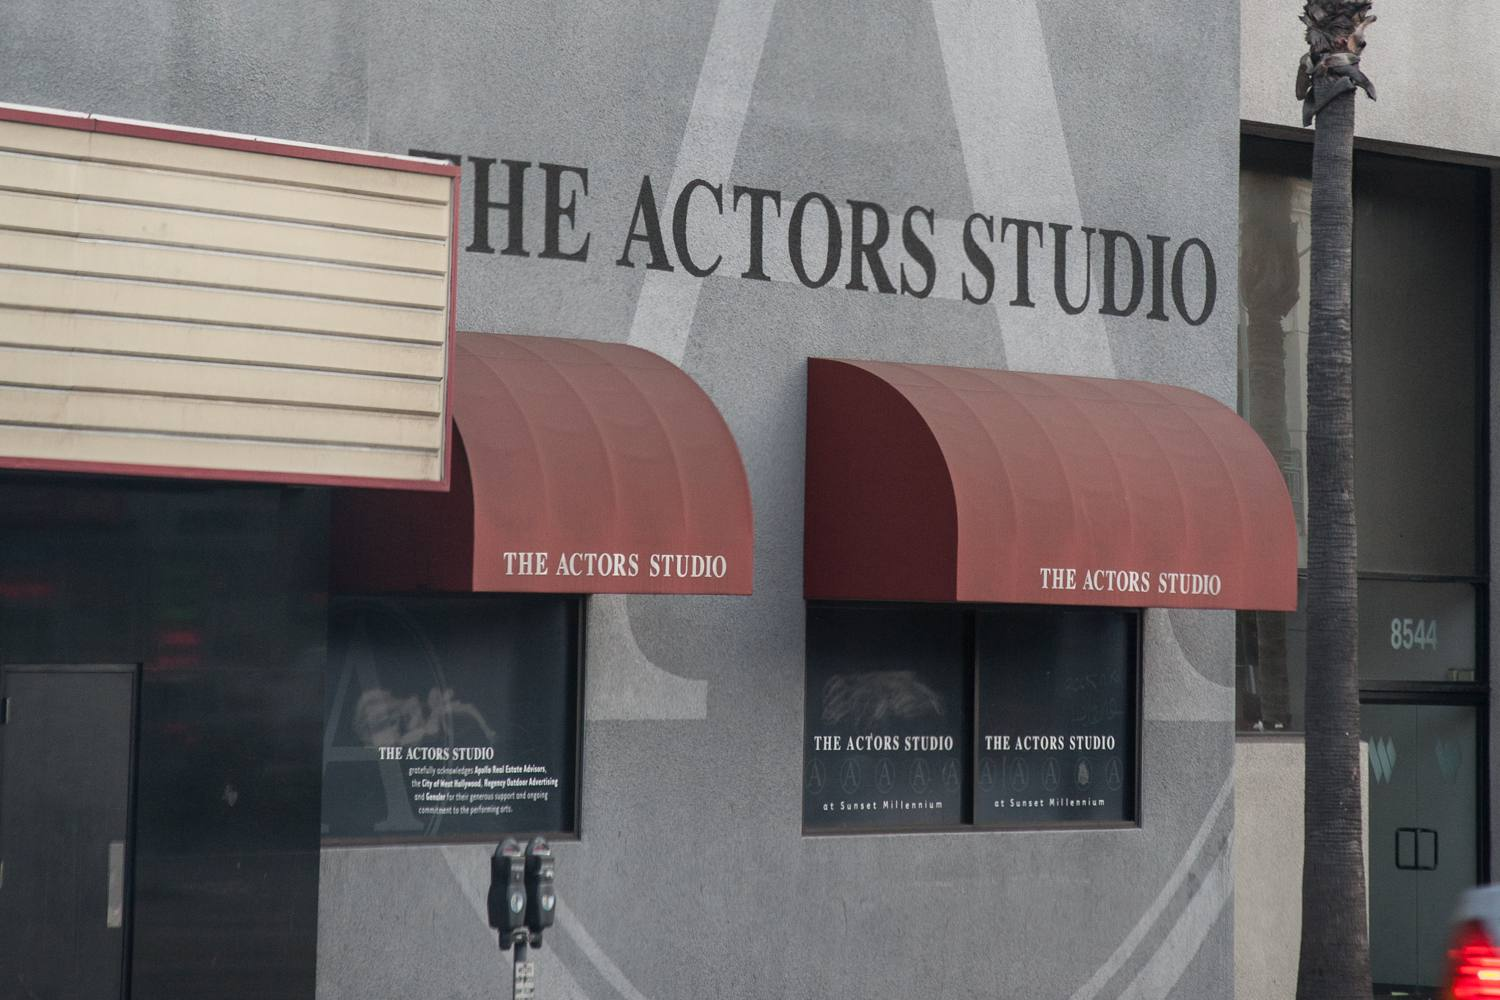 The Actor's Studio in West Hollywood